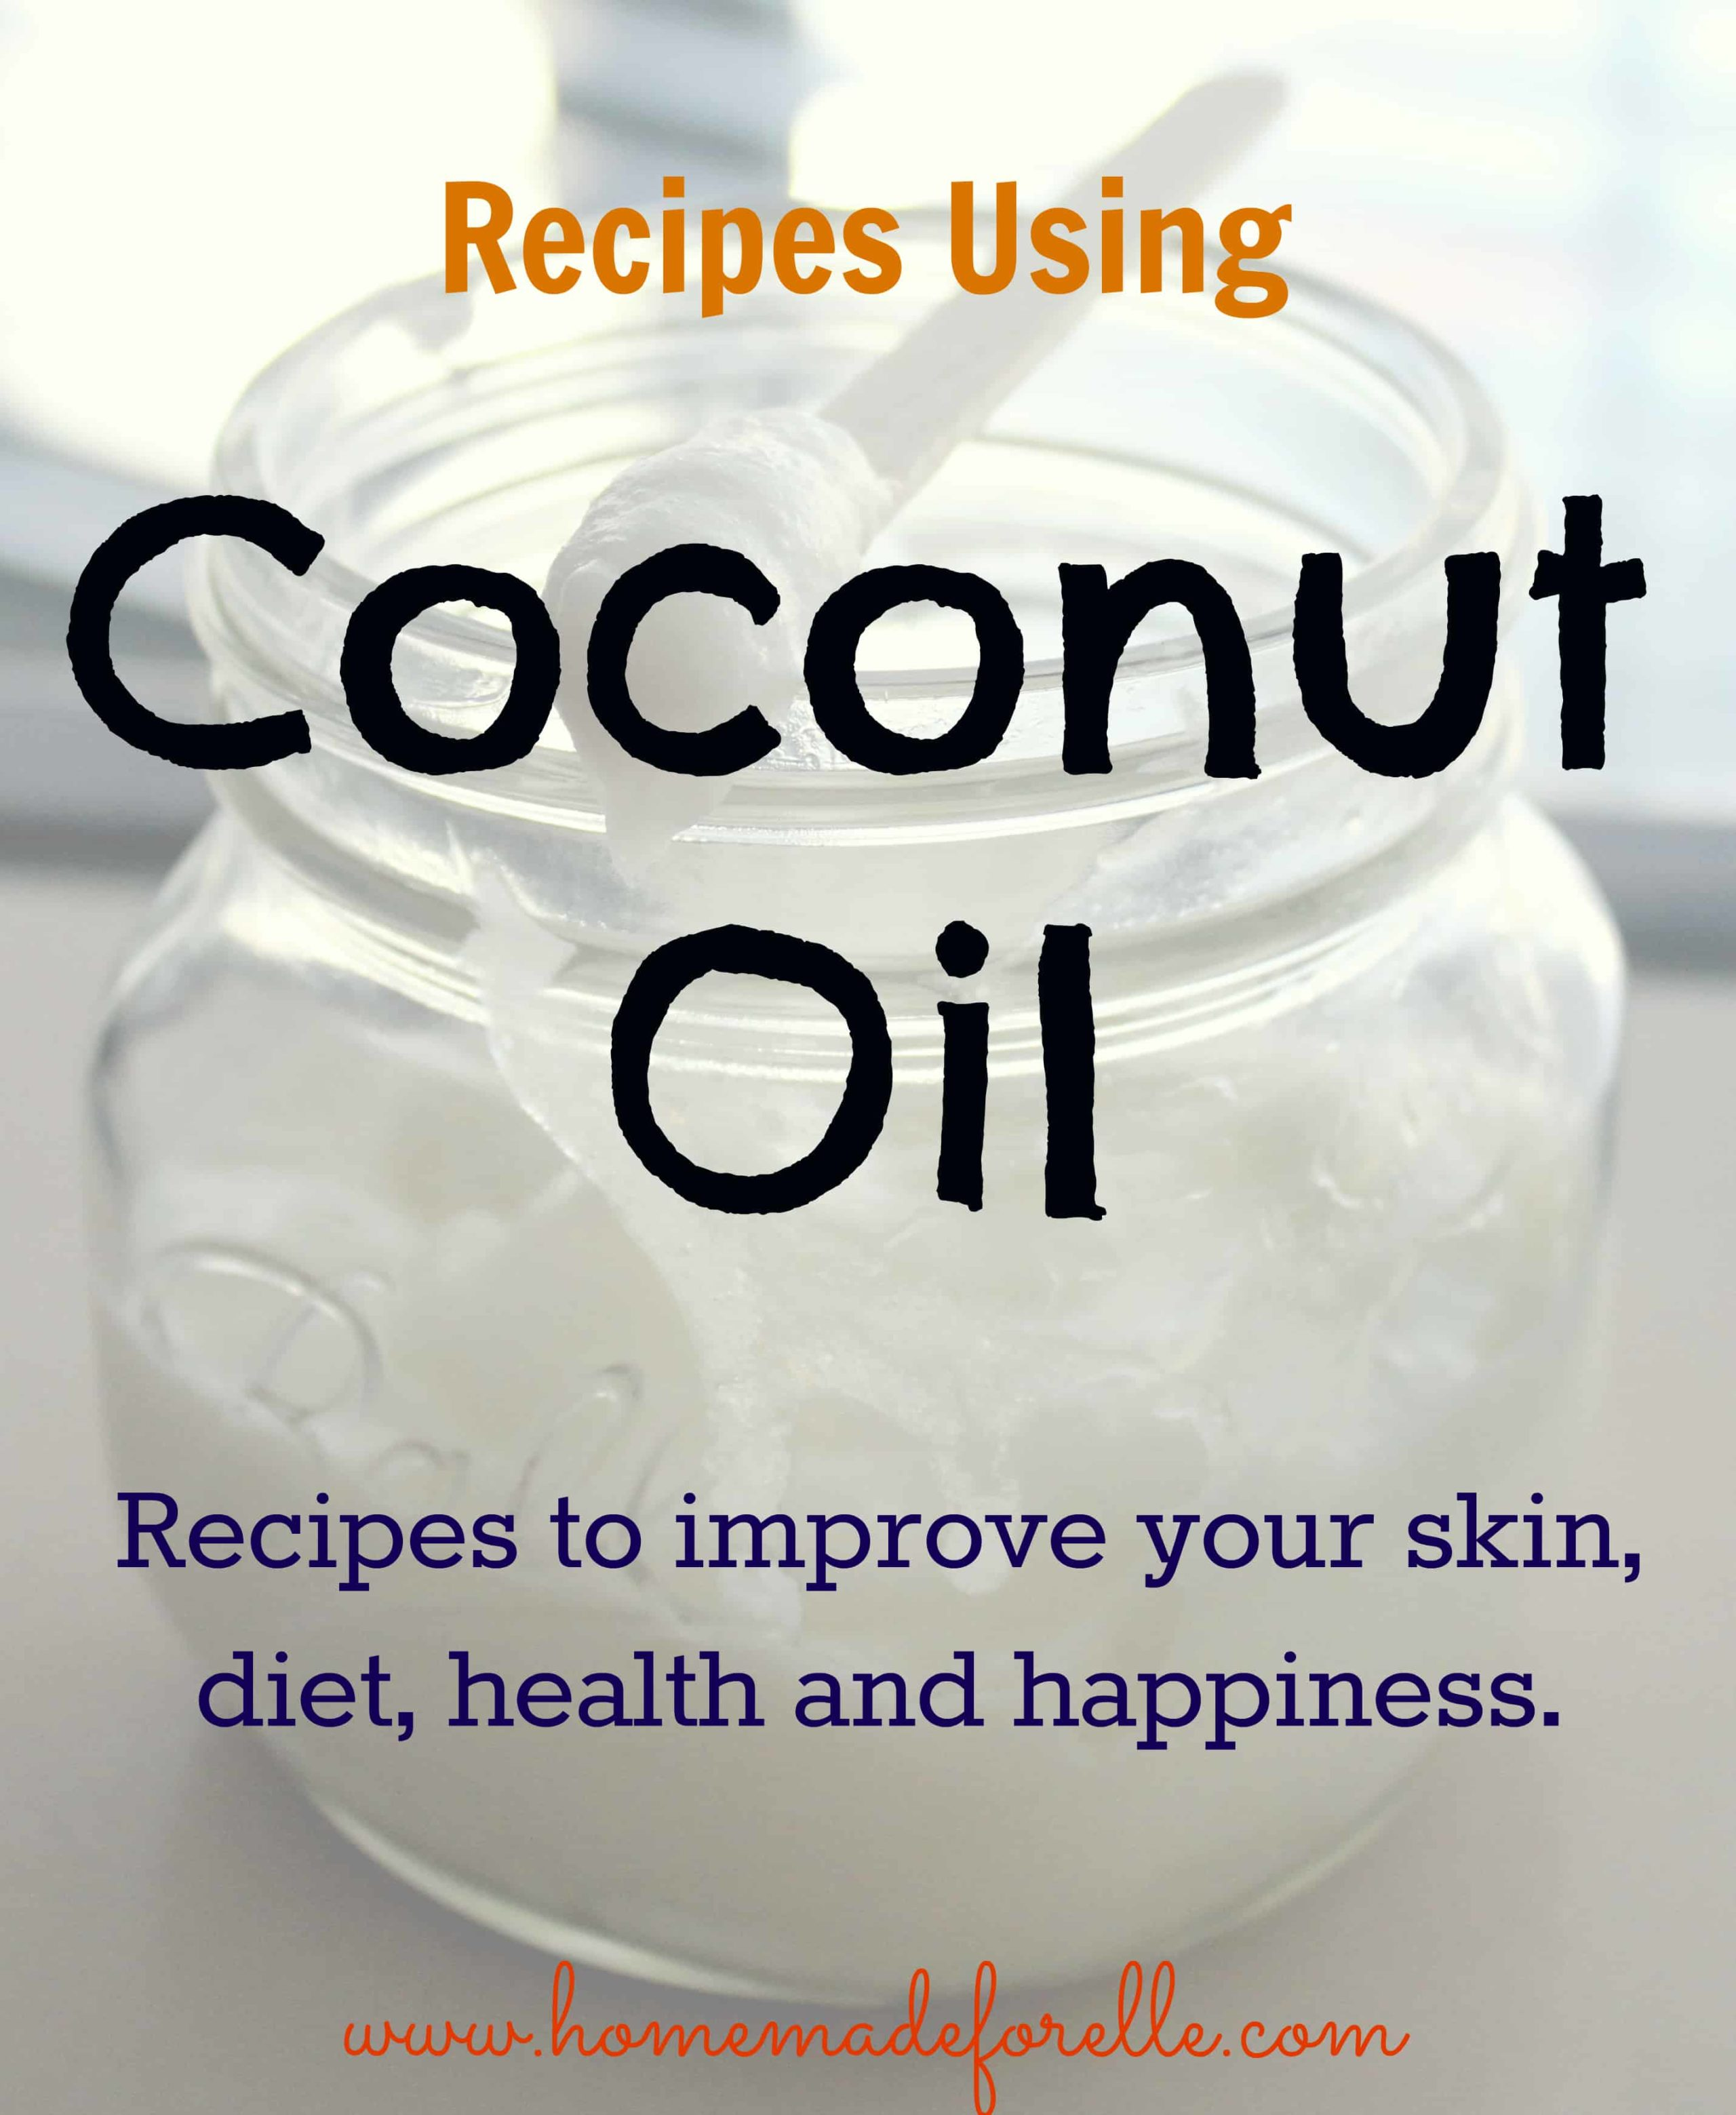 Recipes Using Coconut Oil